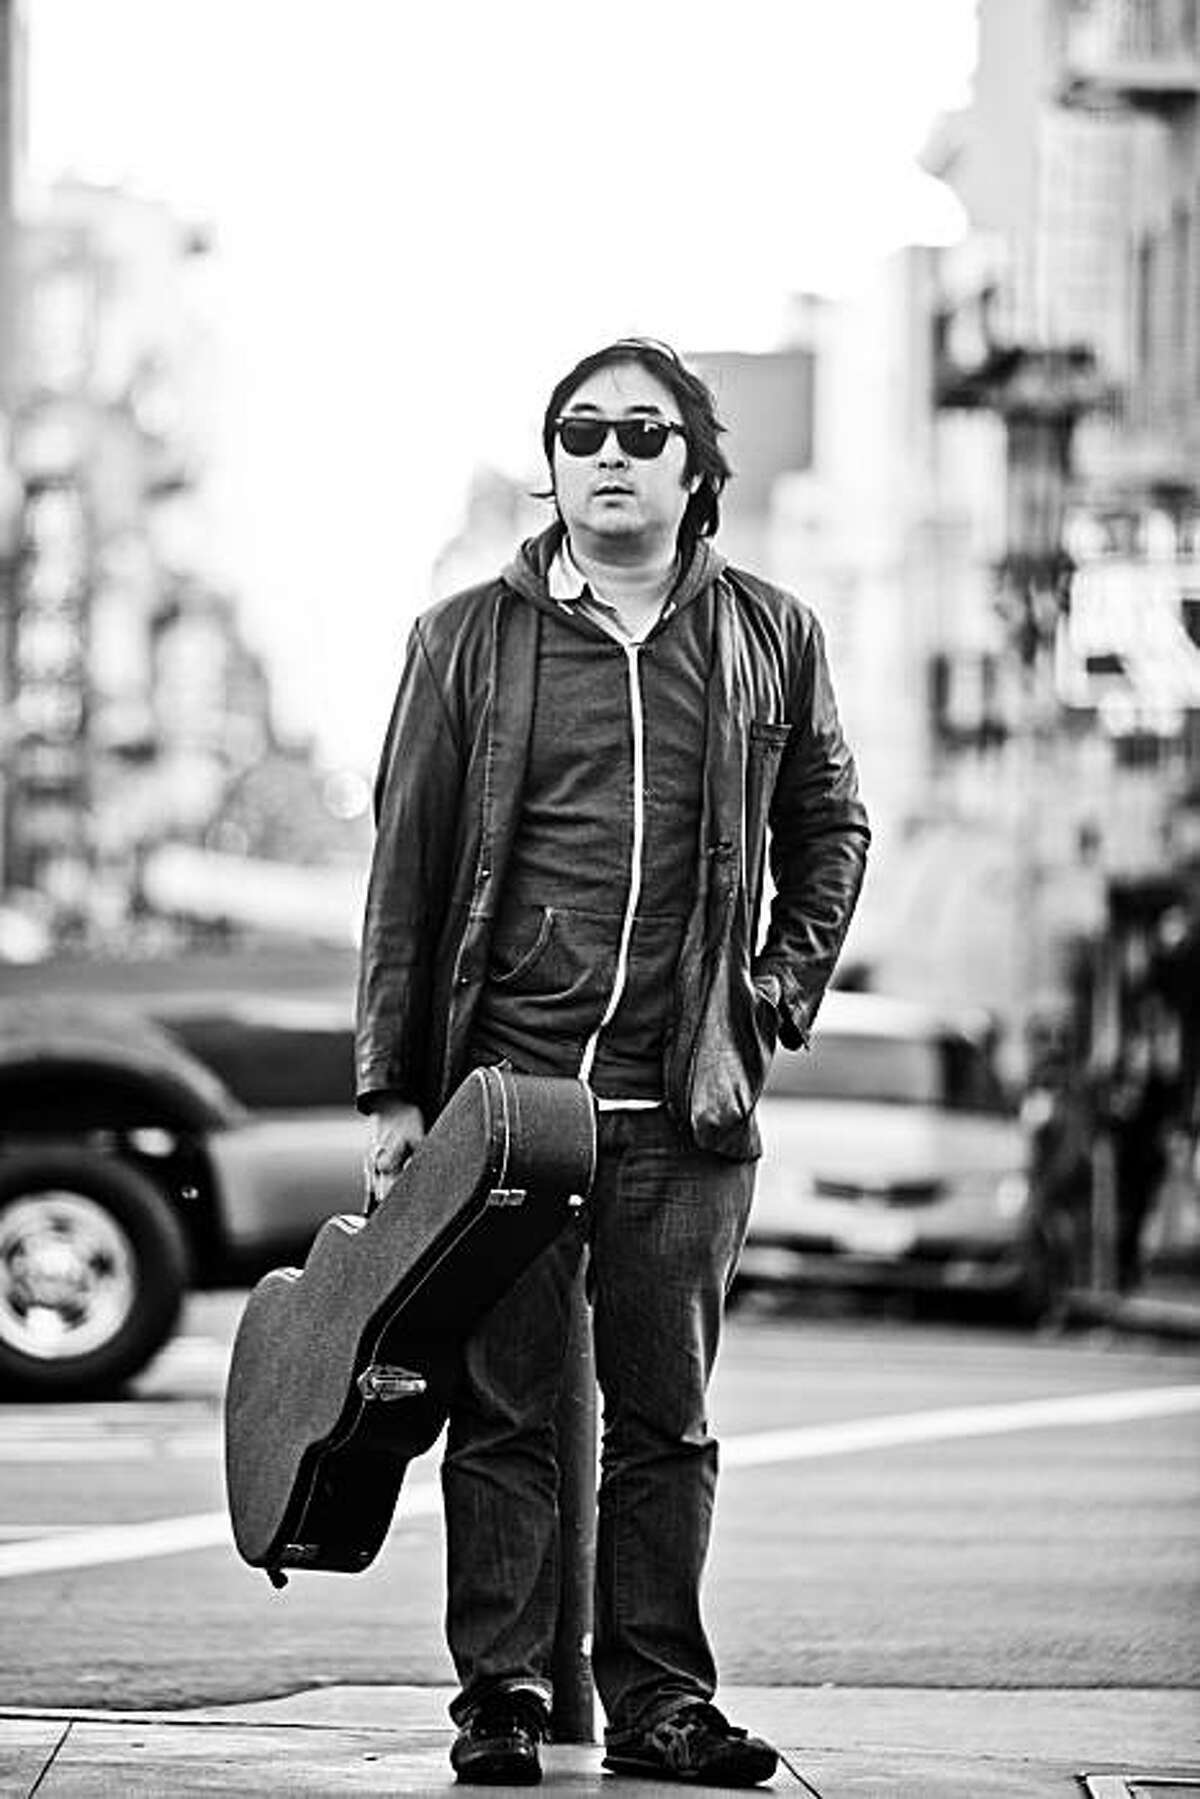 Bay Area musician Goh Nakamura is the star of Dave Boyle's latest quirky comedy,